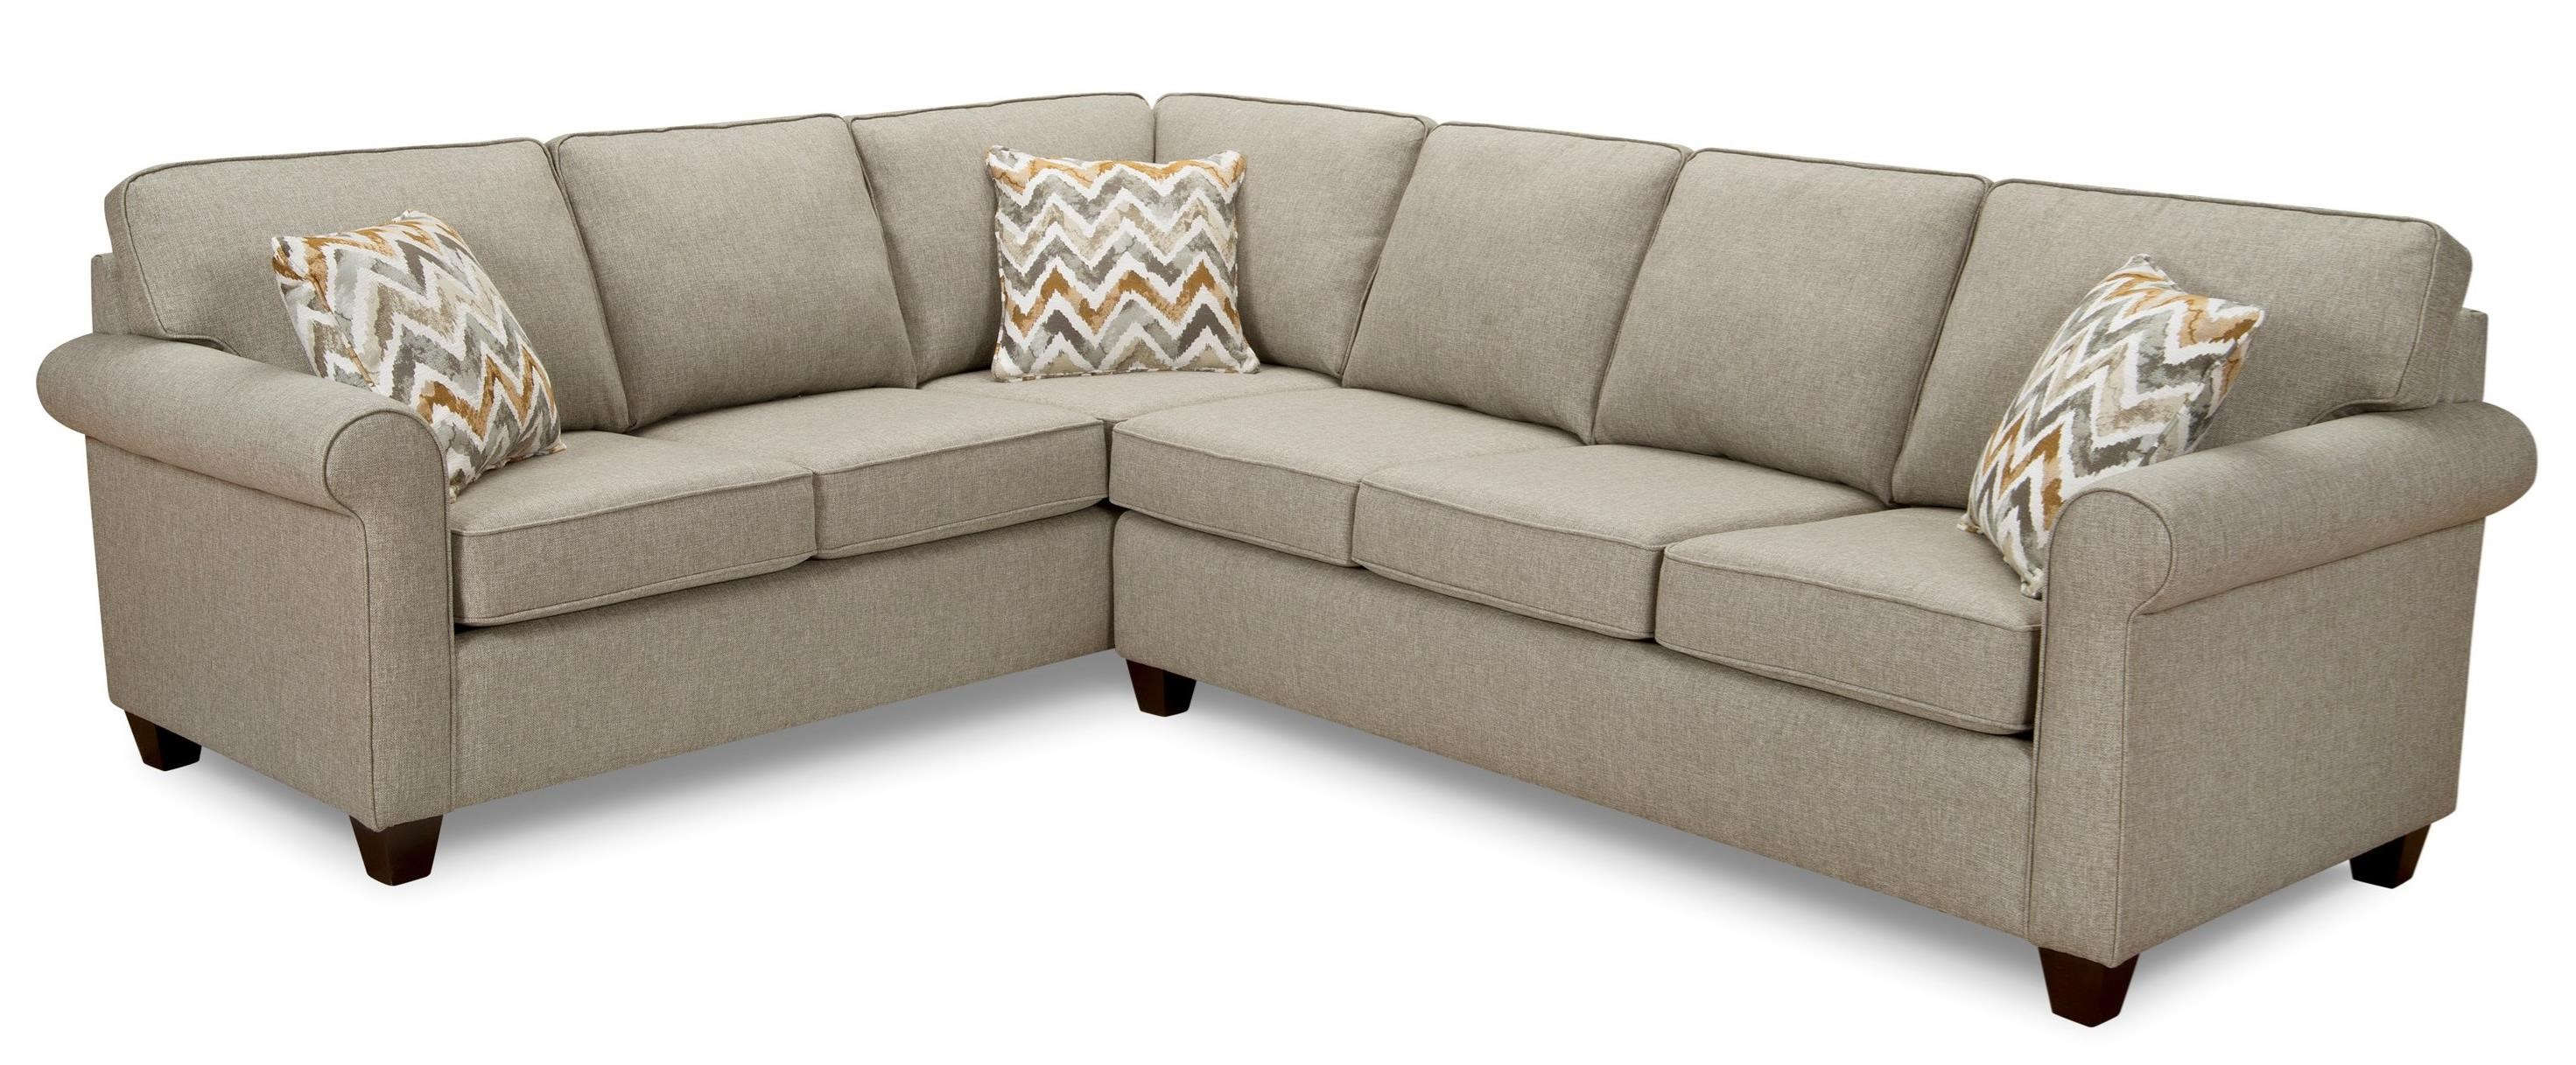 9701 Sectional Sofa by Superstyle at Jordan's Home Furnishings